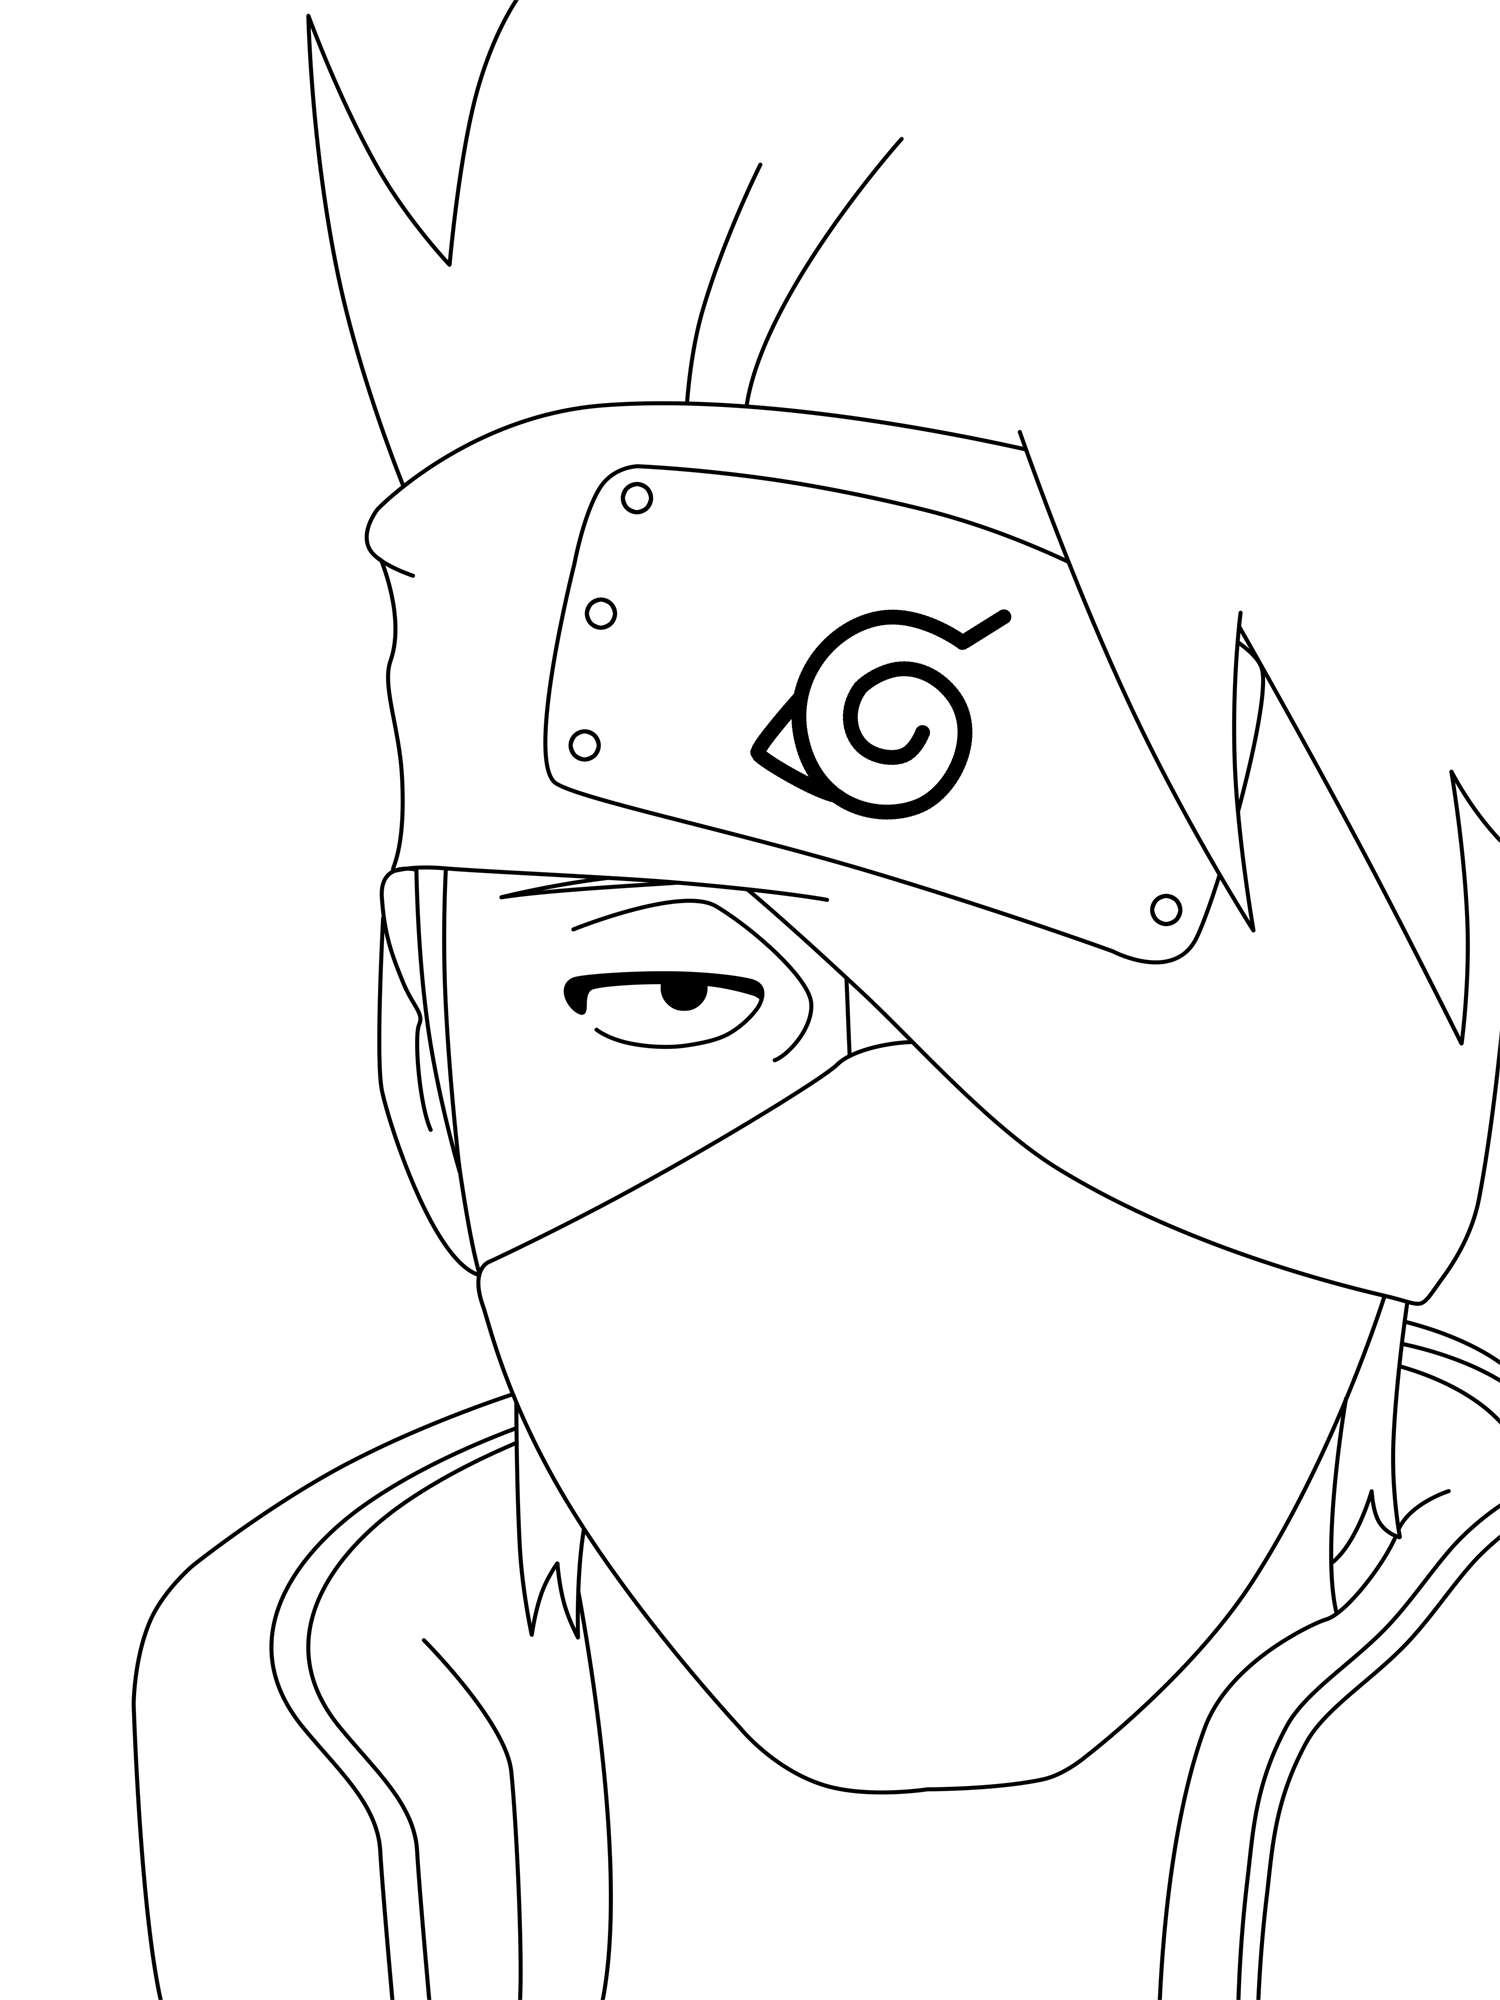 Kakashi Lineart 171641545 further How To Draw Sakura Shippuden likewise Naruto Coloring Pages also Edo Madara 421078409 further Dibujos Para Colorear De Puzzles De Anime Manga. on naruto character coloring pages